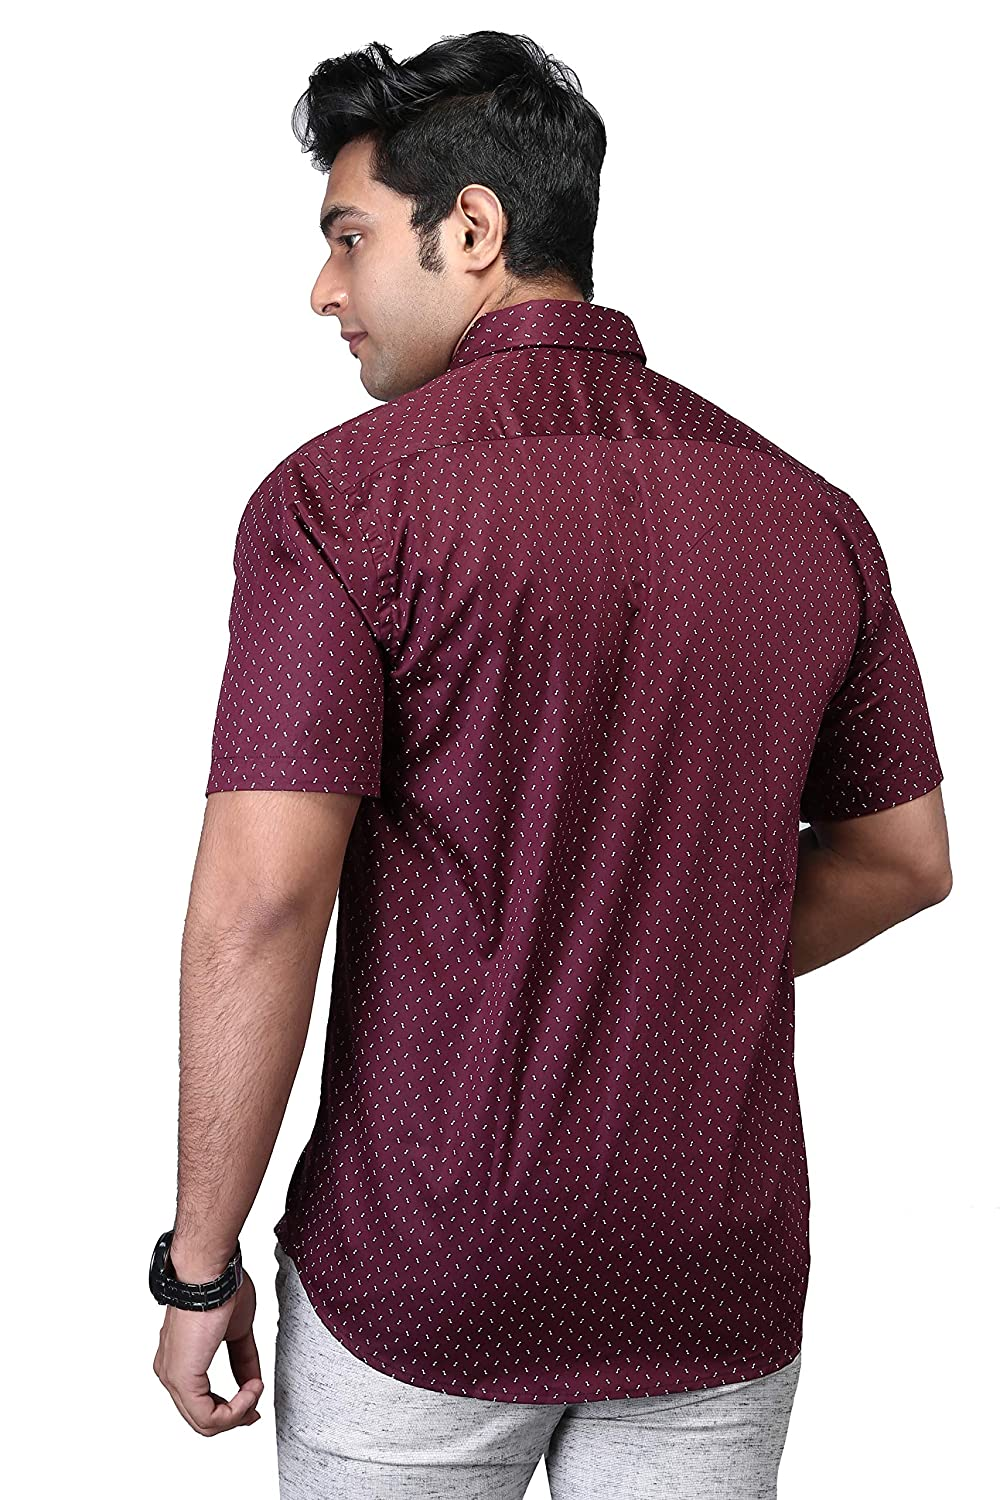 5a9d3ffe Printed Casual Half Sleeve Shirt for Men|Printed Half  Shirt|Cotton|Maroon|Regular Fit|40,42,44|Men Casual |Maroon, White